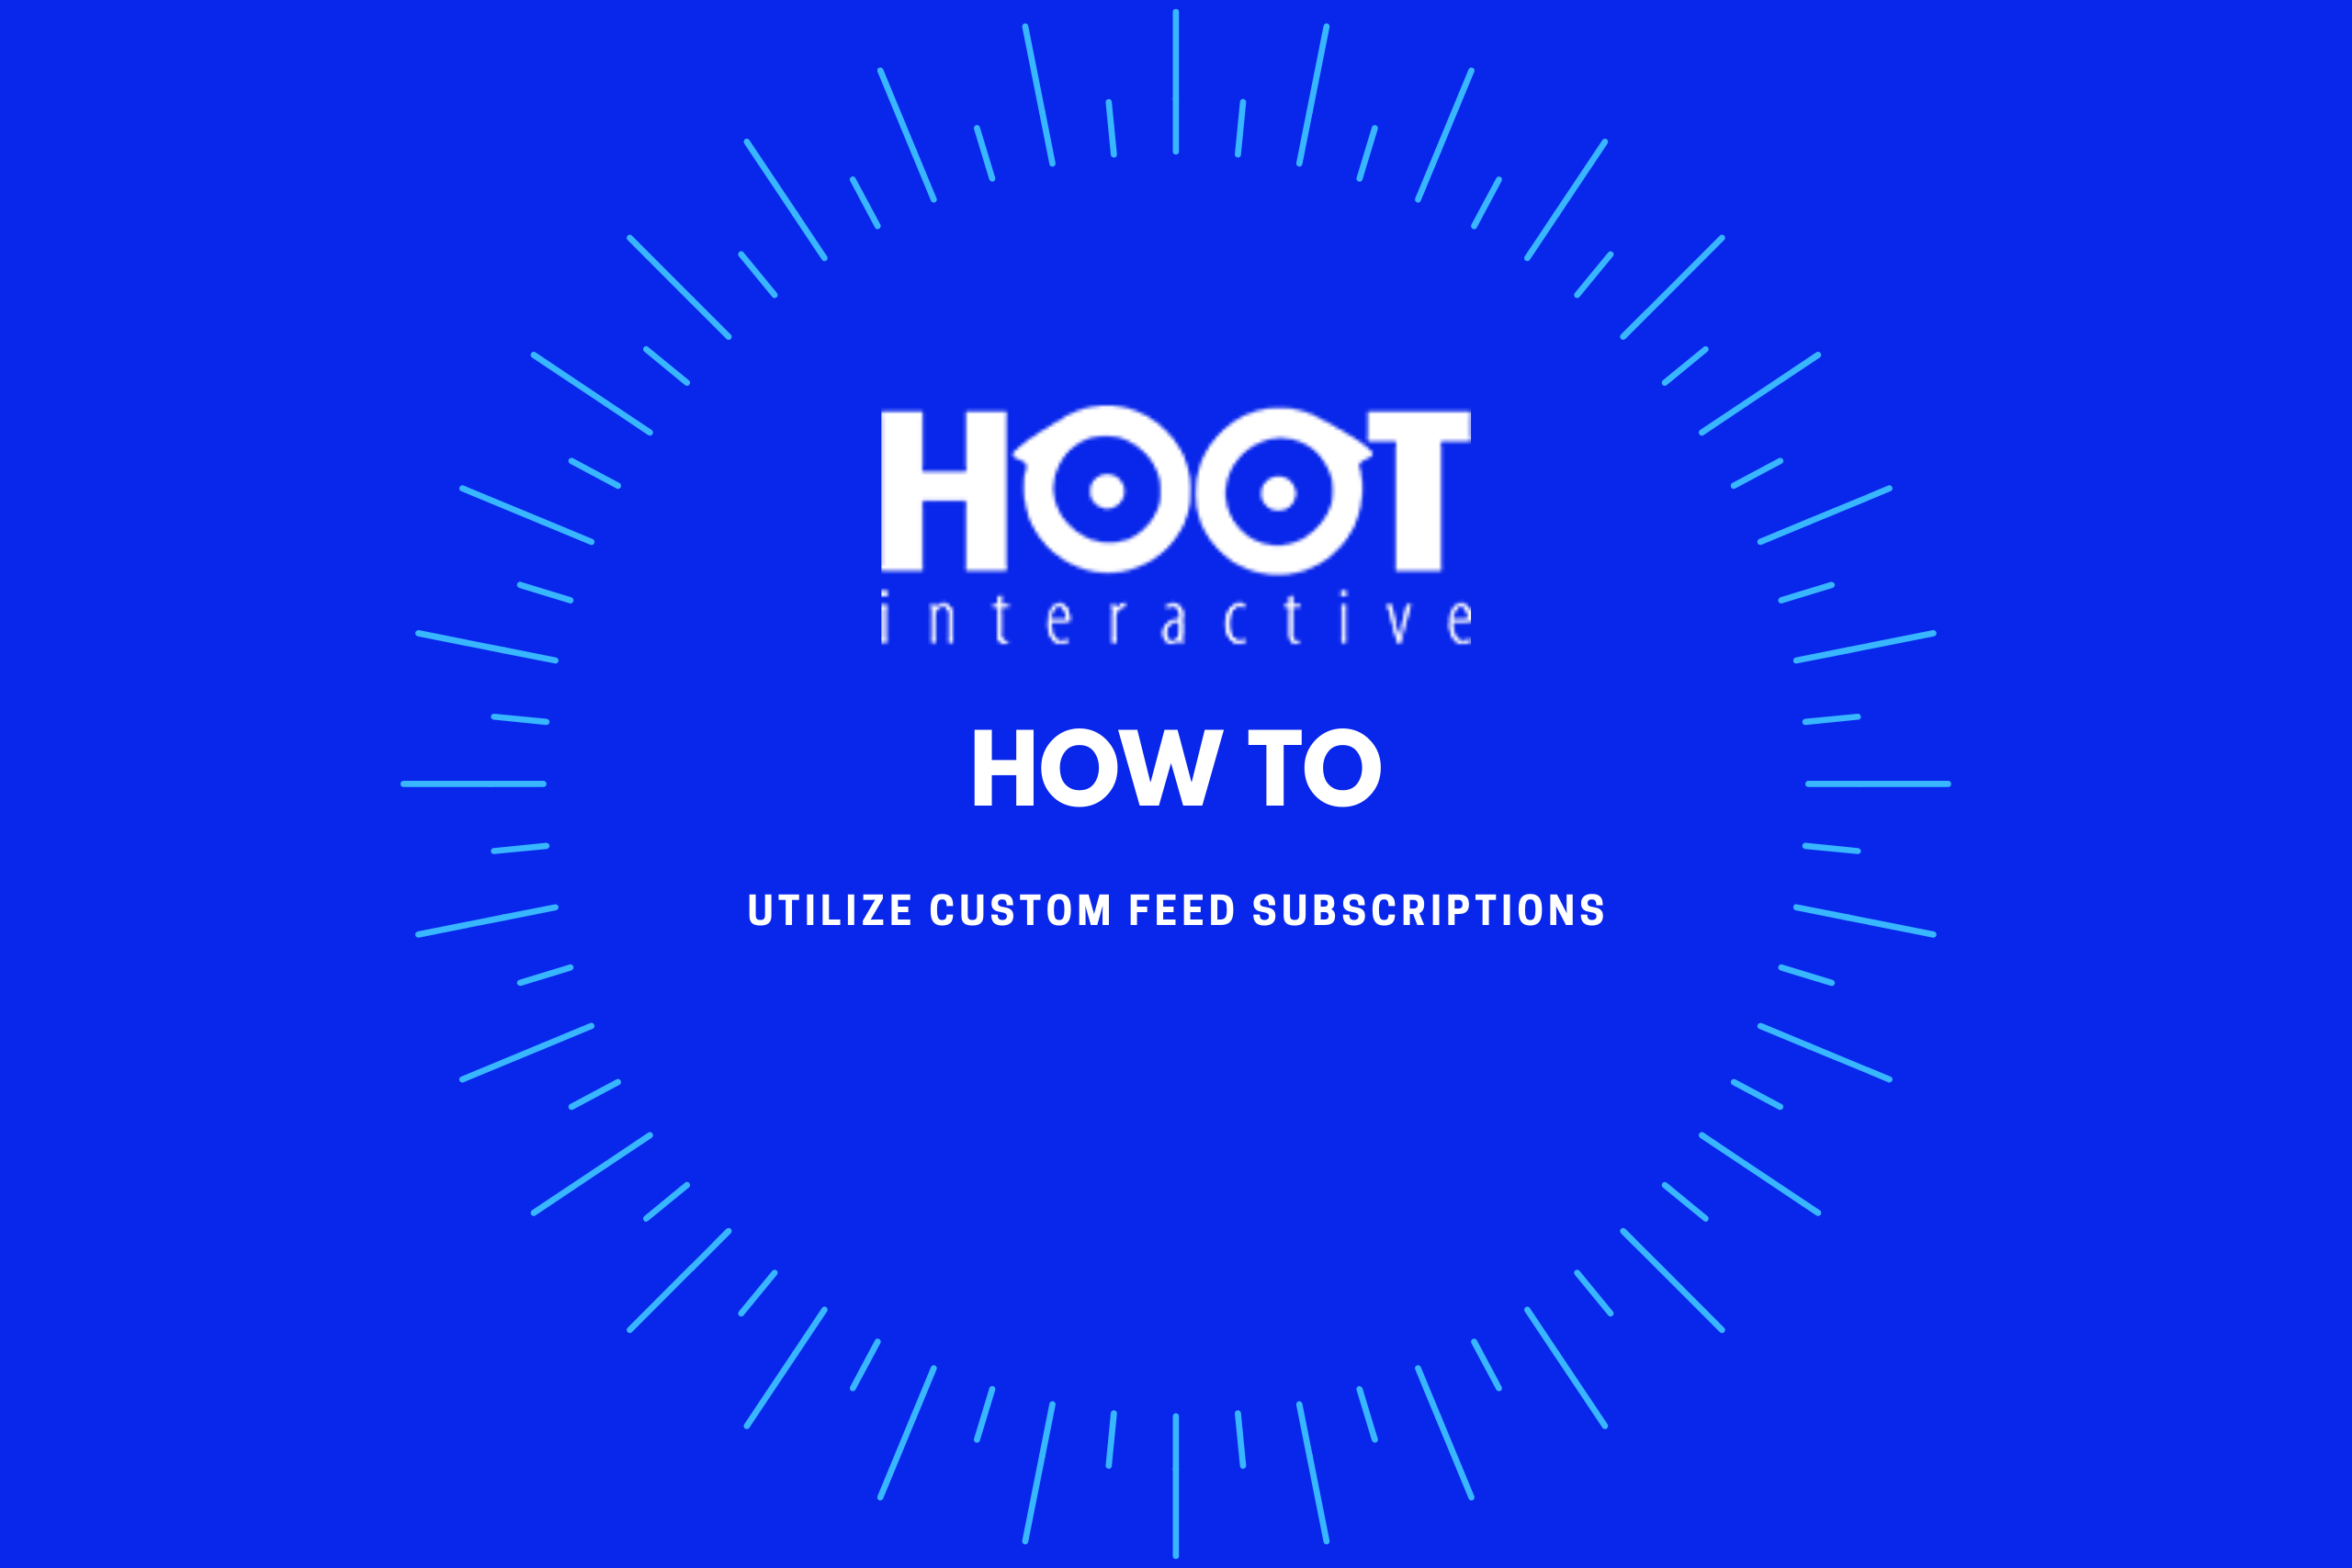 Hoot Interactive How To Utilize Custom Feed Subscriptions